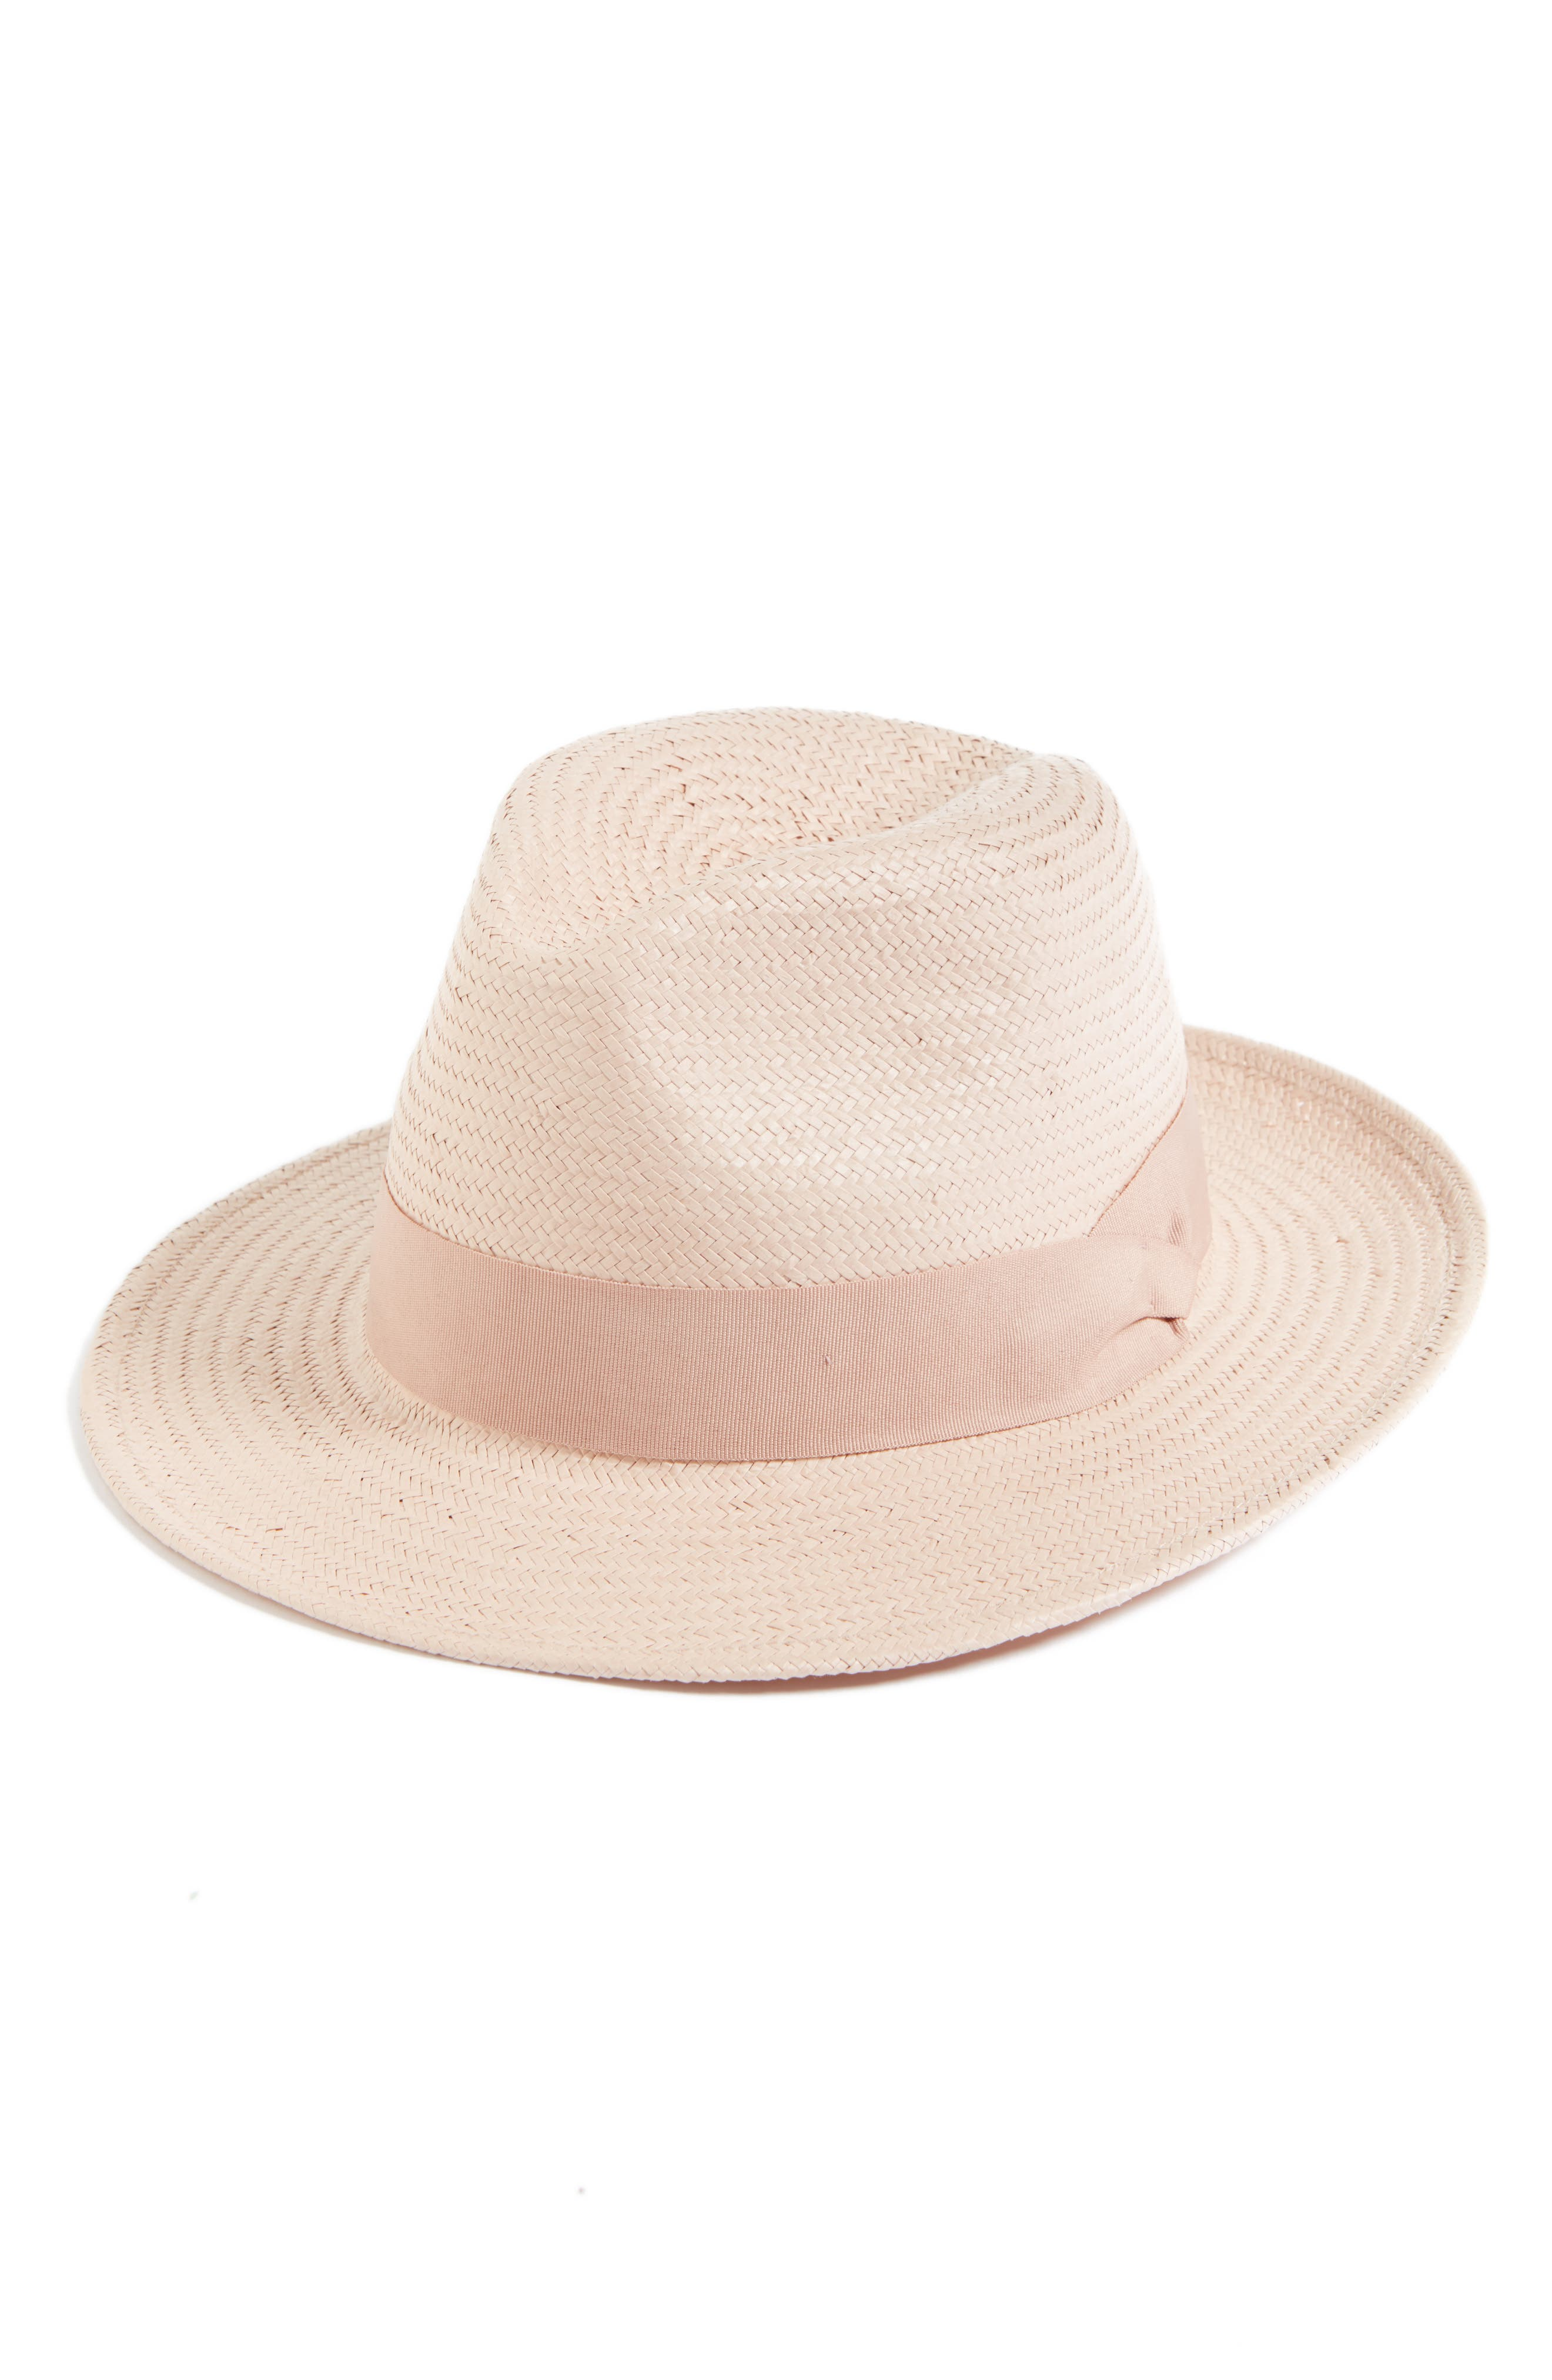 Hat for Women On Sale, Ivory, Paper Yarn, 2017, Small Medium Twin-Set